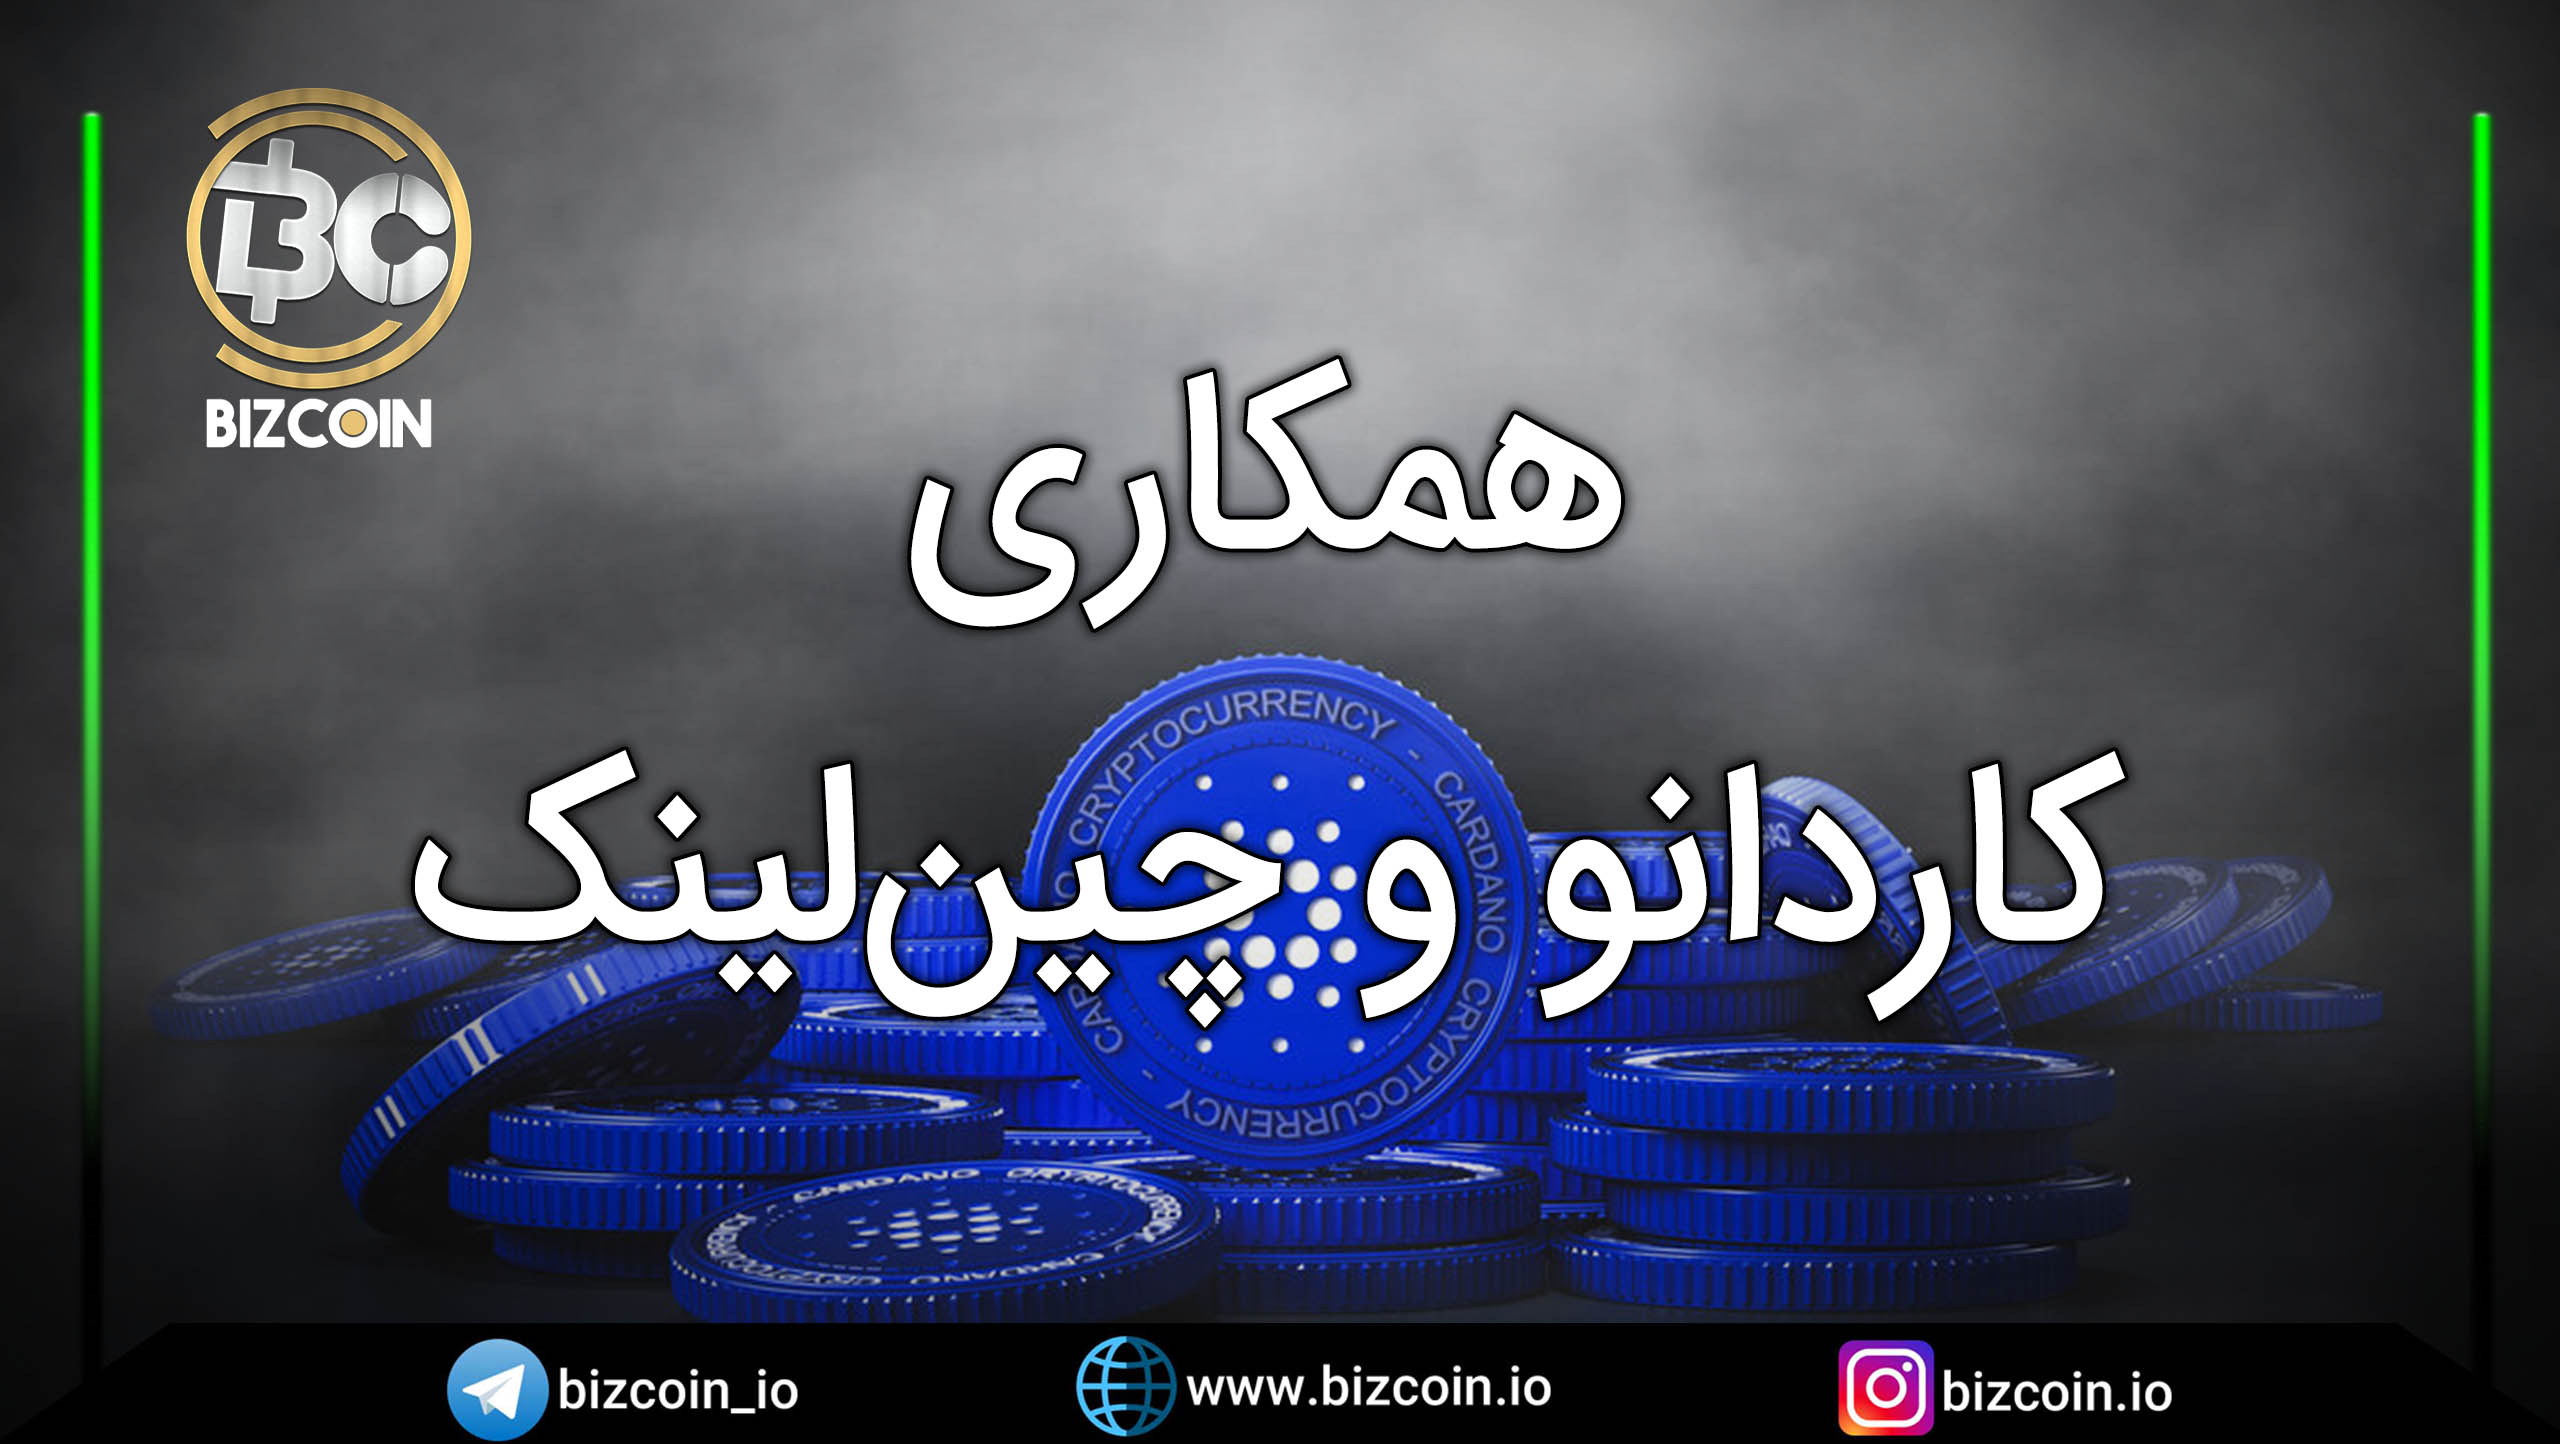 Collaboration between Cardano and Chinlink همکاری کاردانو و چینلینک